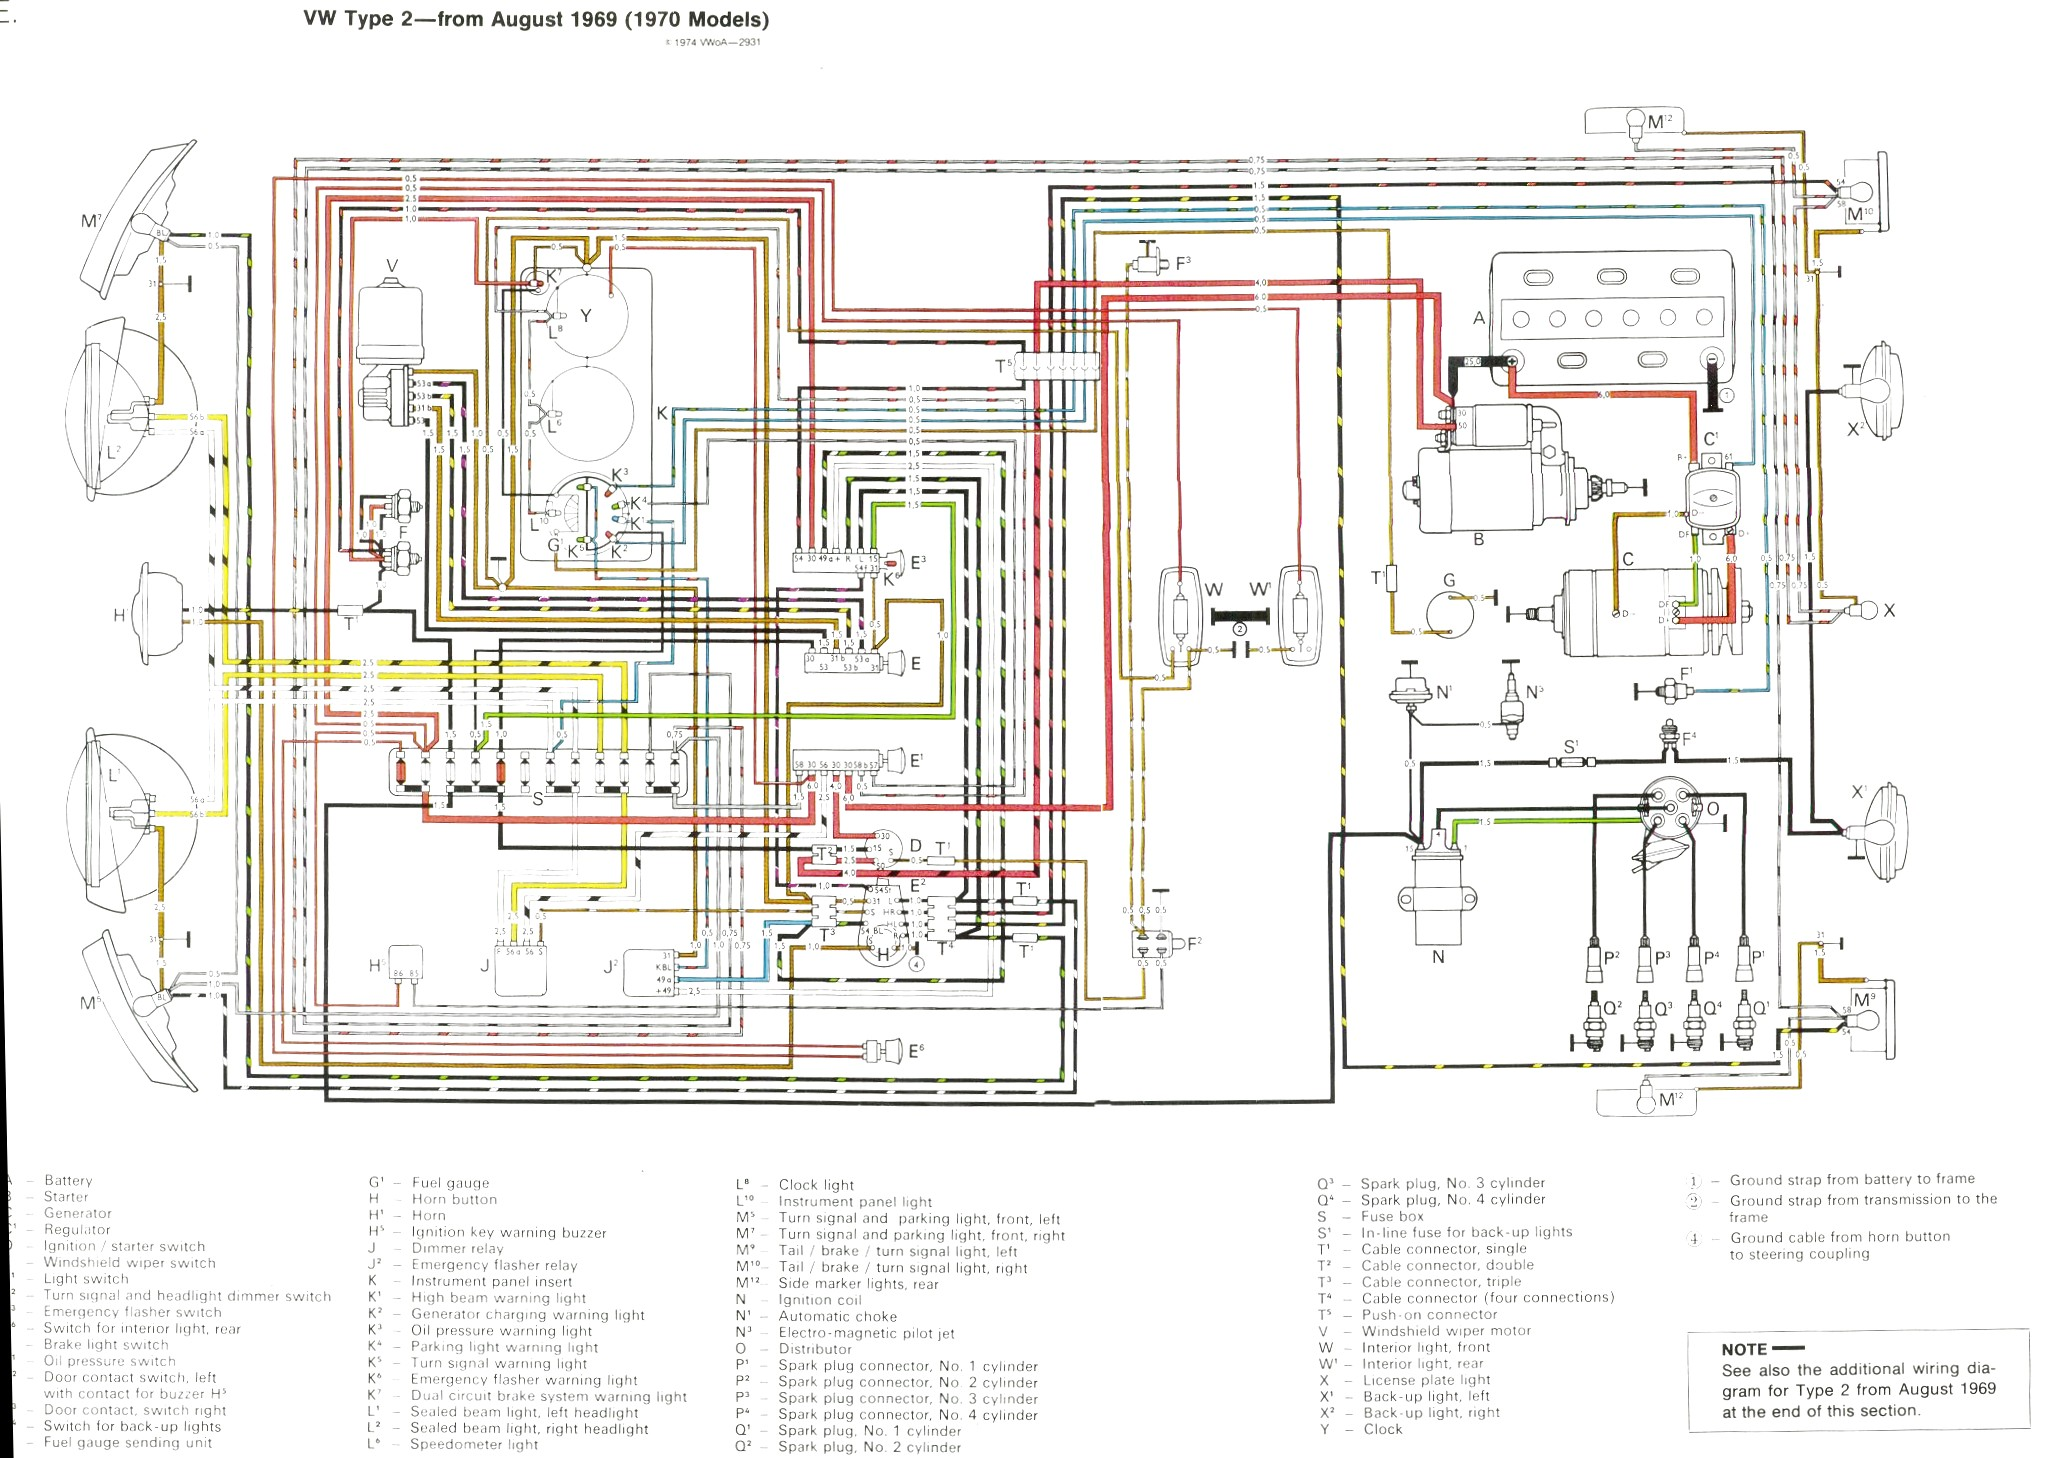 bus 69 70 vintagebus com vw bus (and other) wiring diagrams 74 vw bus wiring diagram at nearapp.co